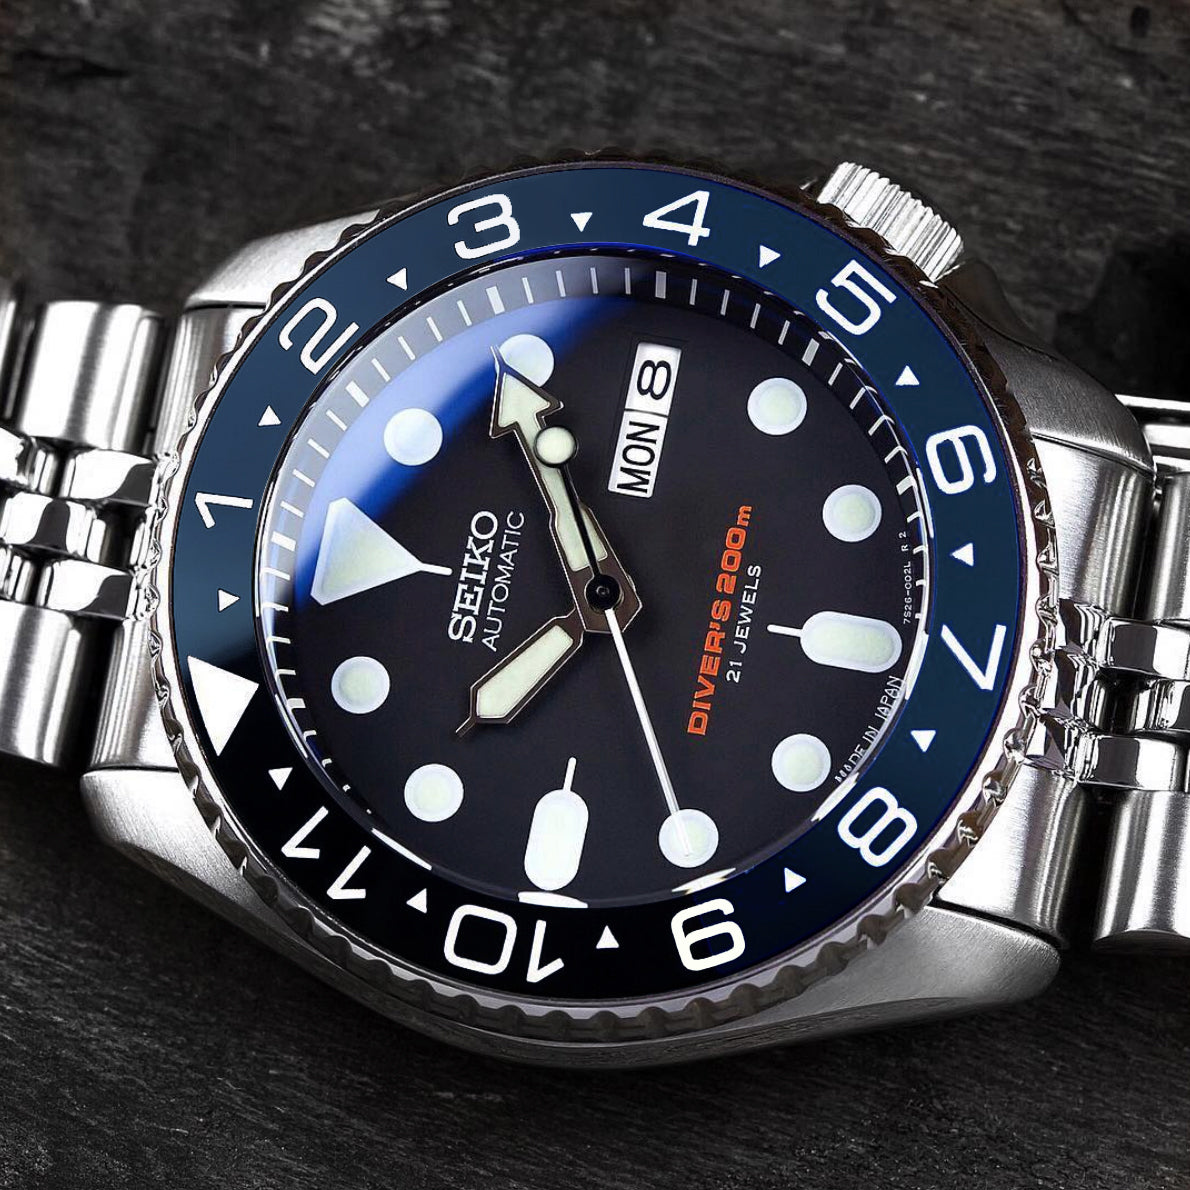 Ceramic Insert - 007 Dual Time Aegean Blue